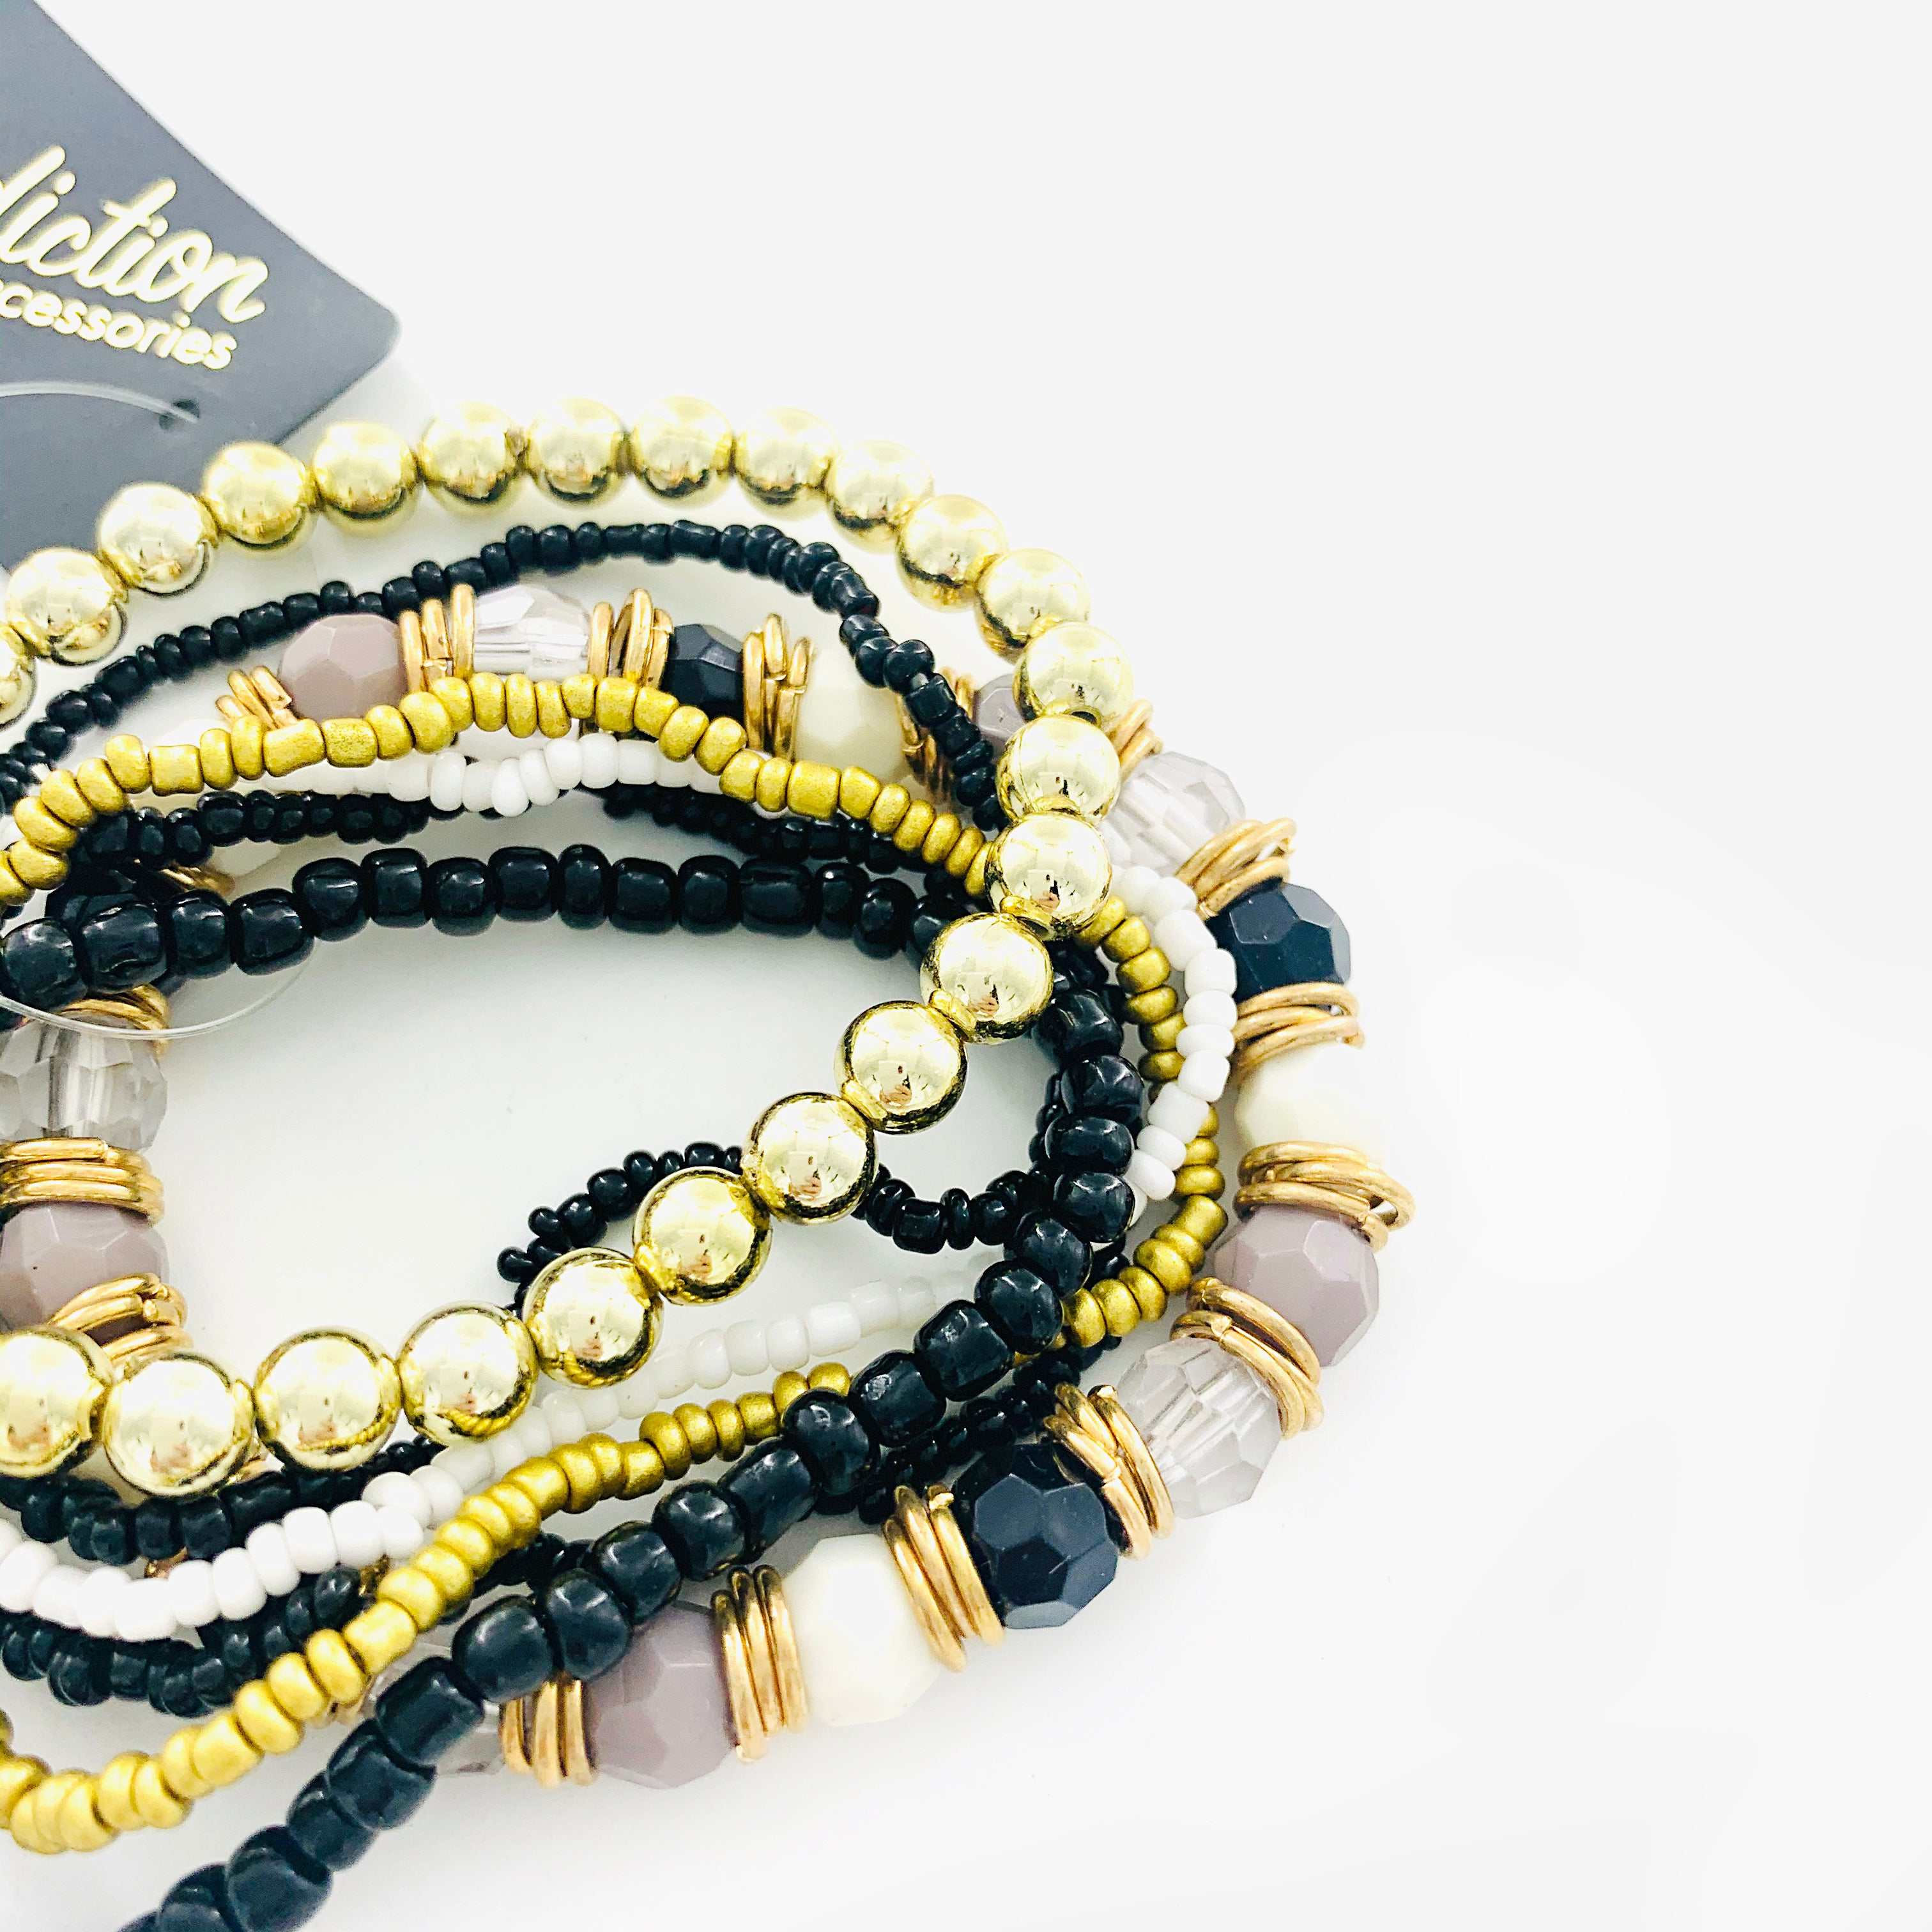 Black and gold beaded bracelet with faceted stones